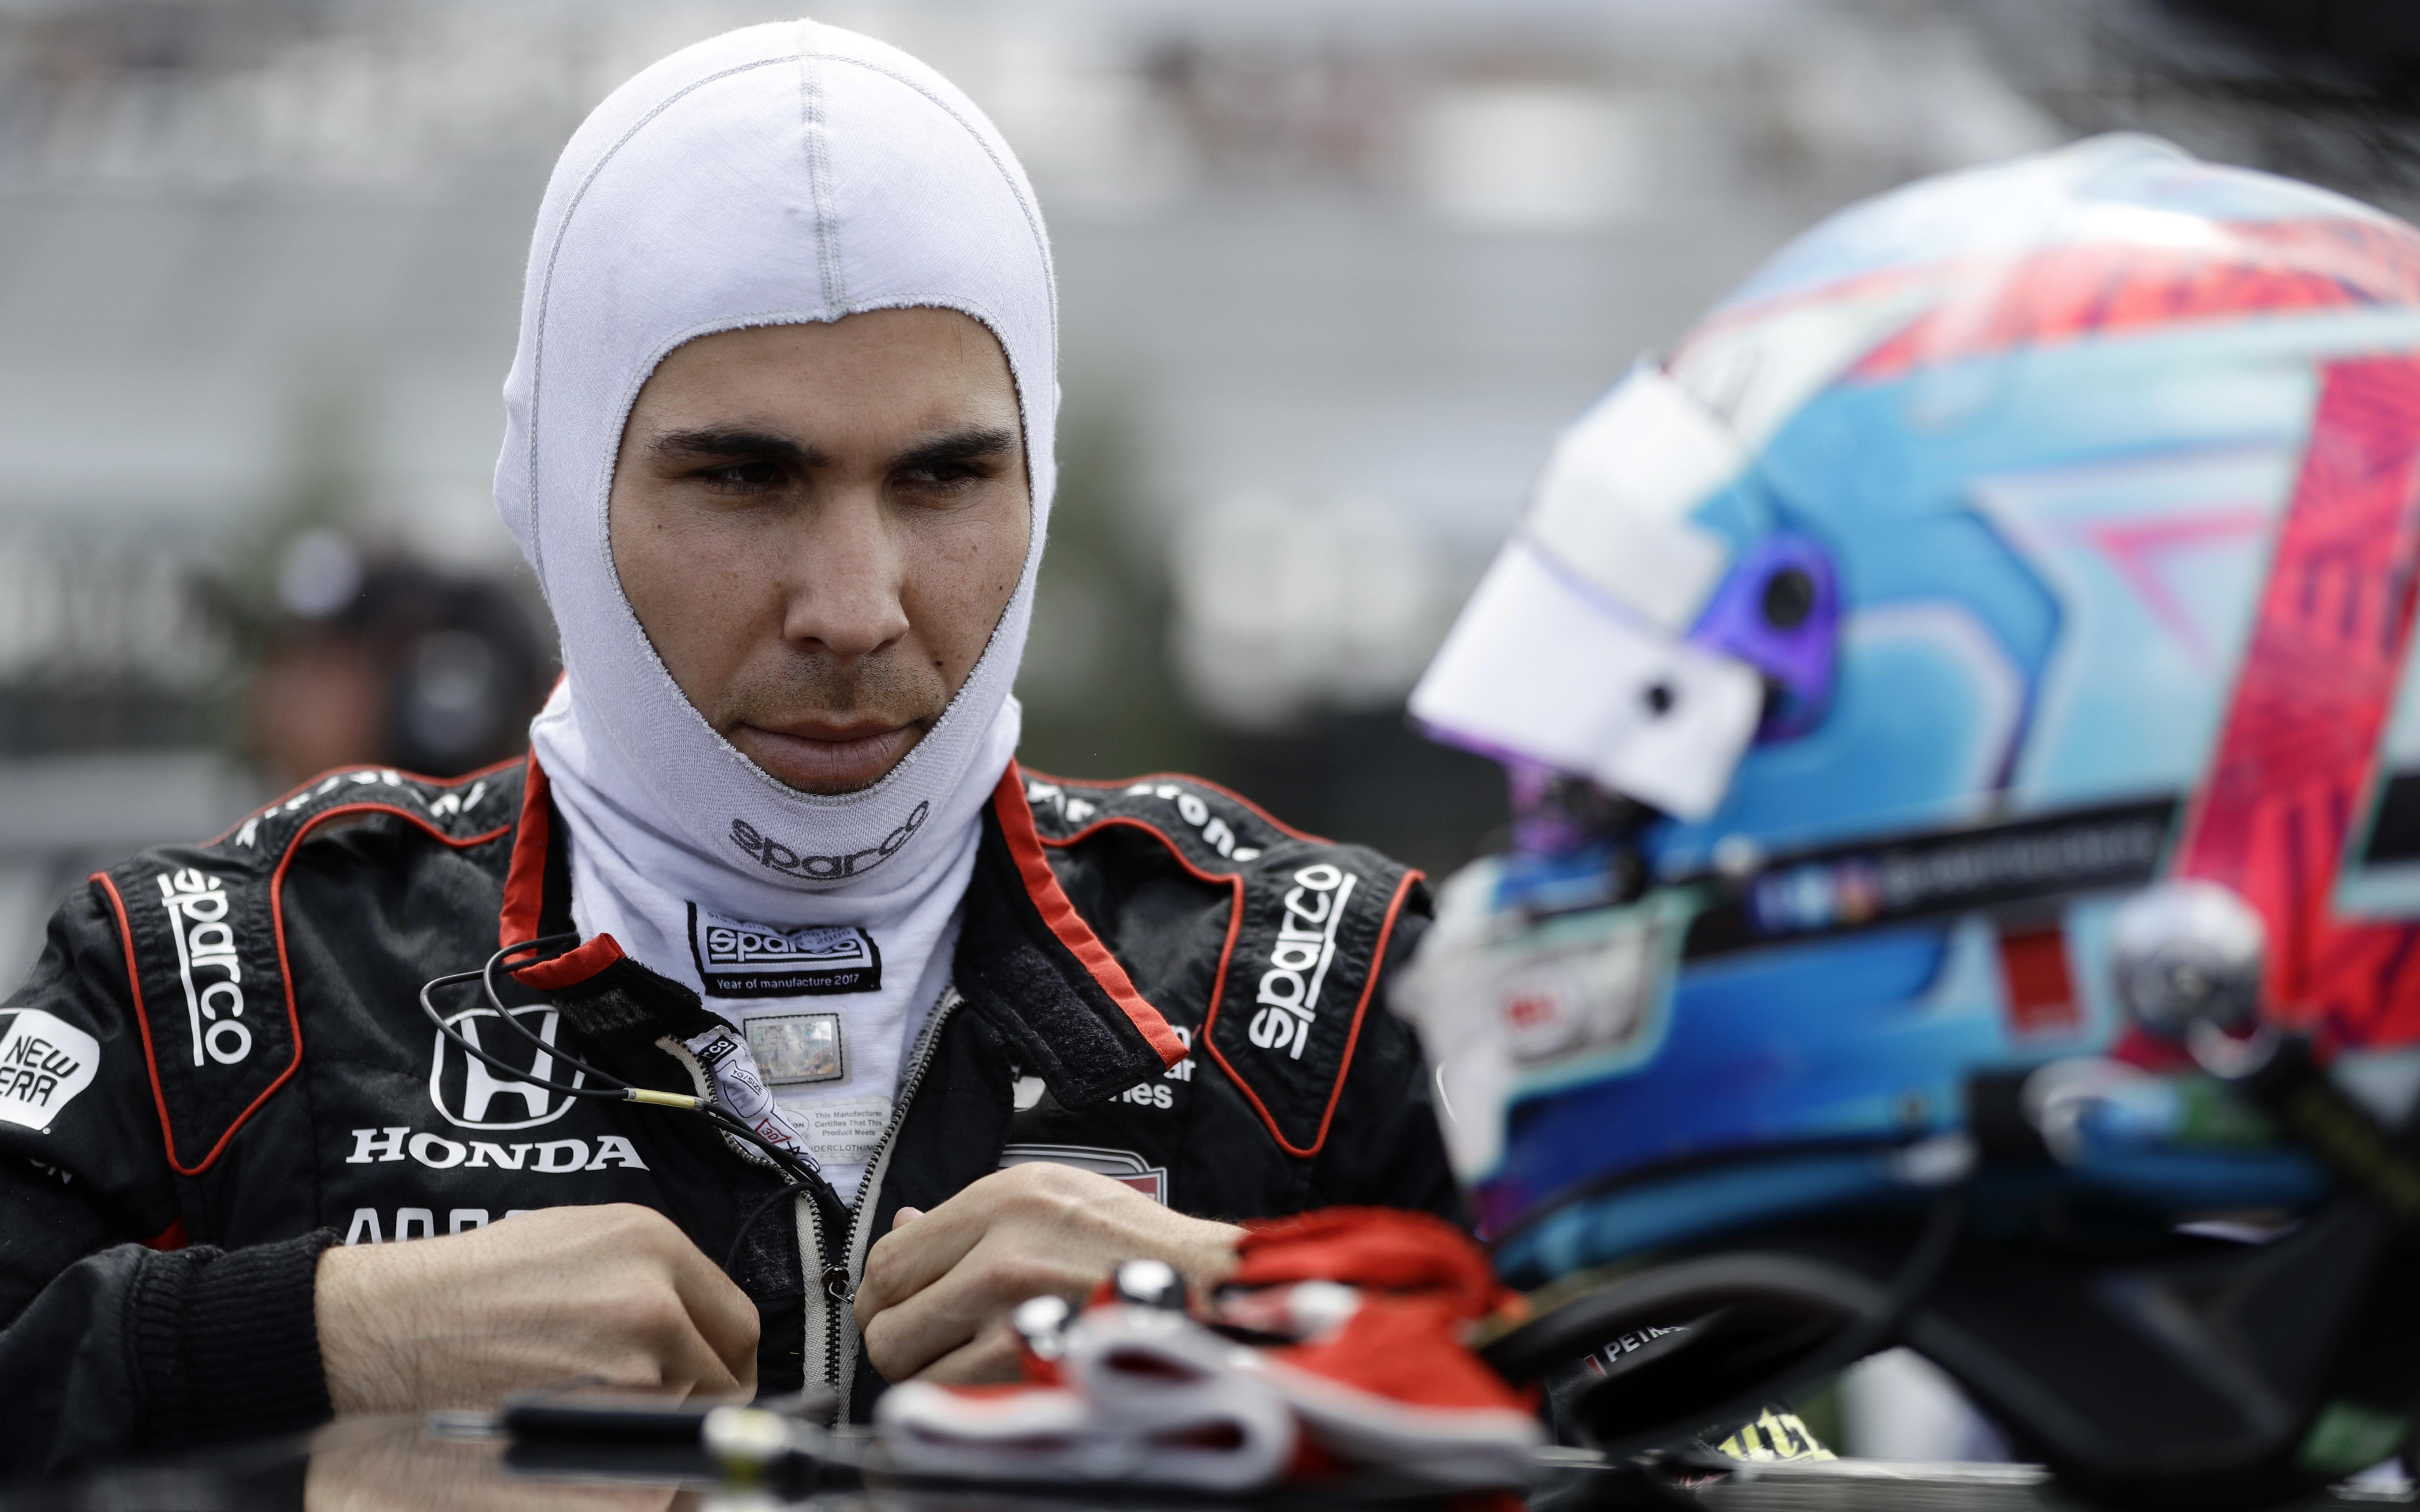 Canadian driver Robert Wickens, pictured before the race, was airlifted to hospital with 'orthopaedic injuries'